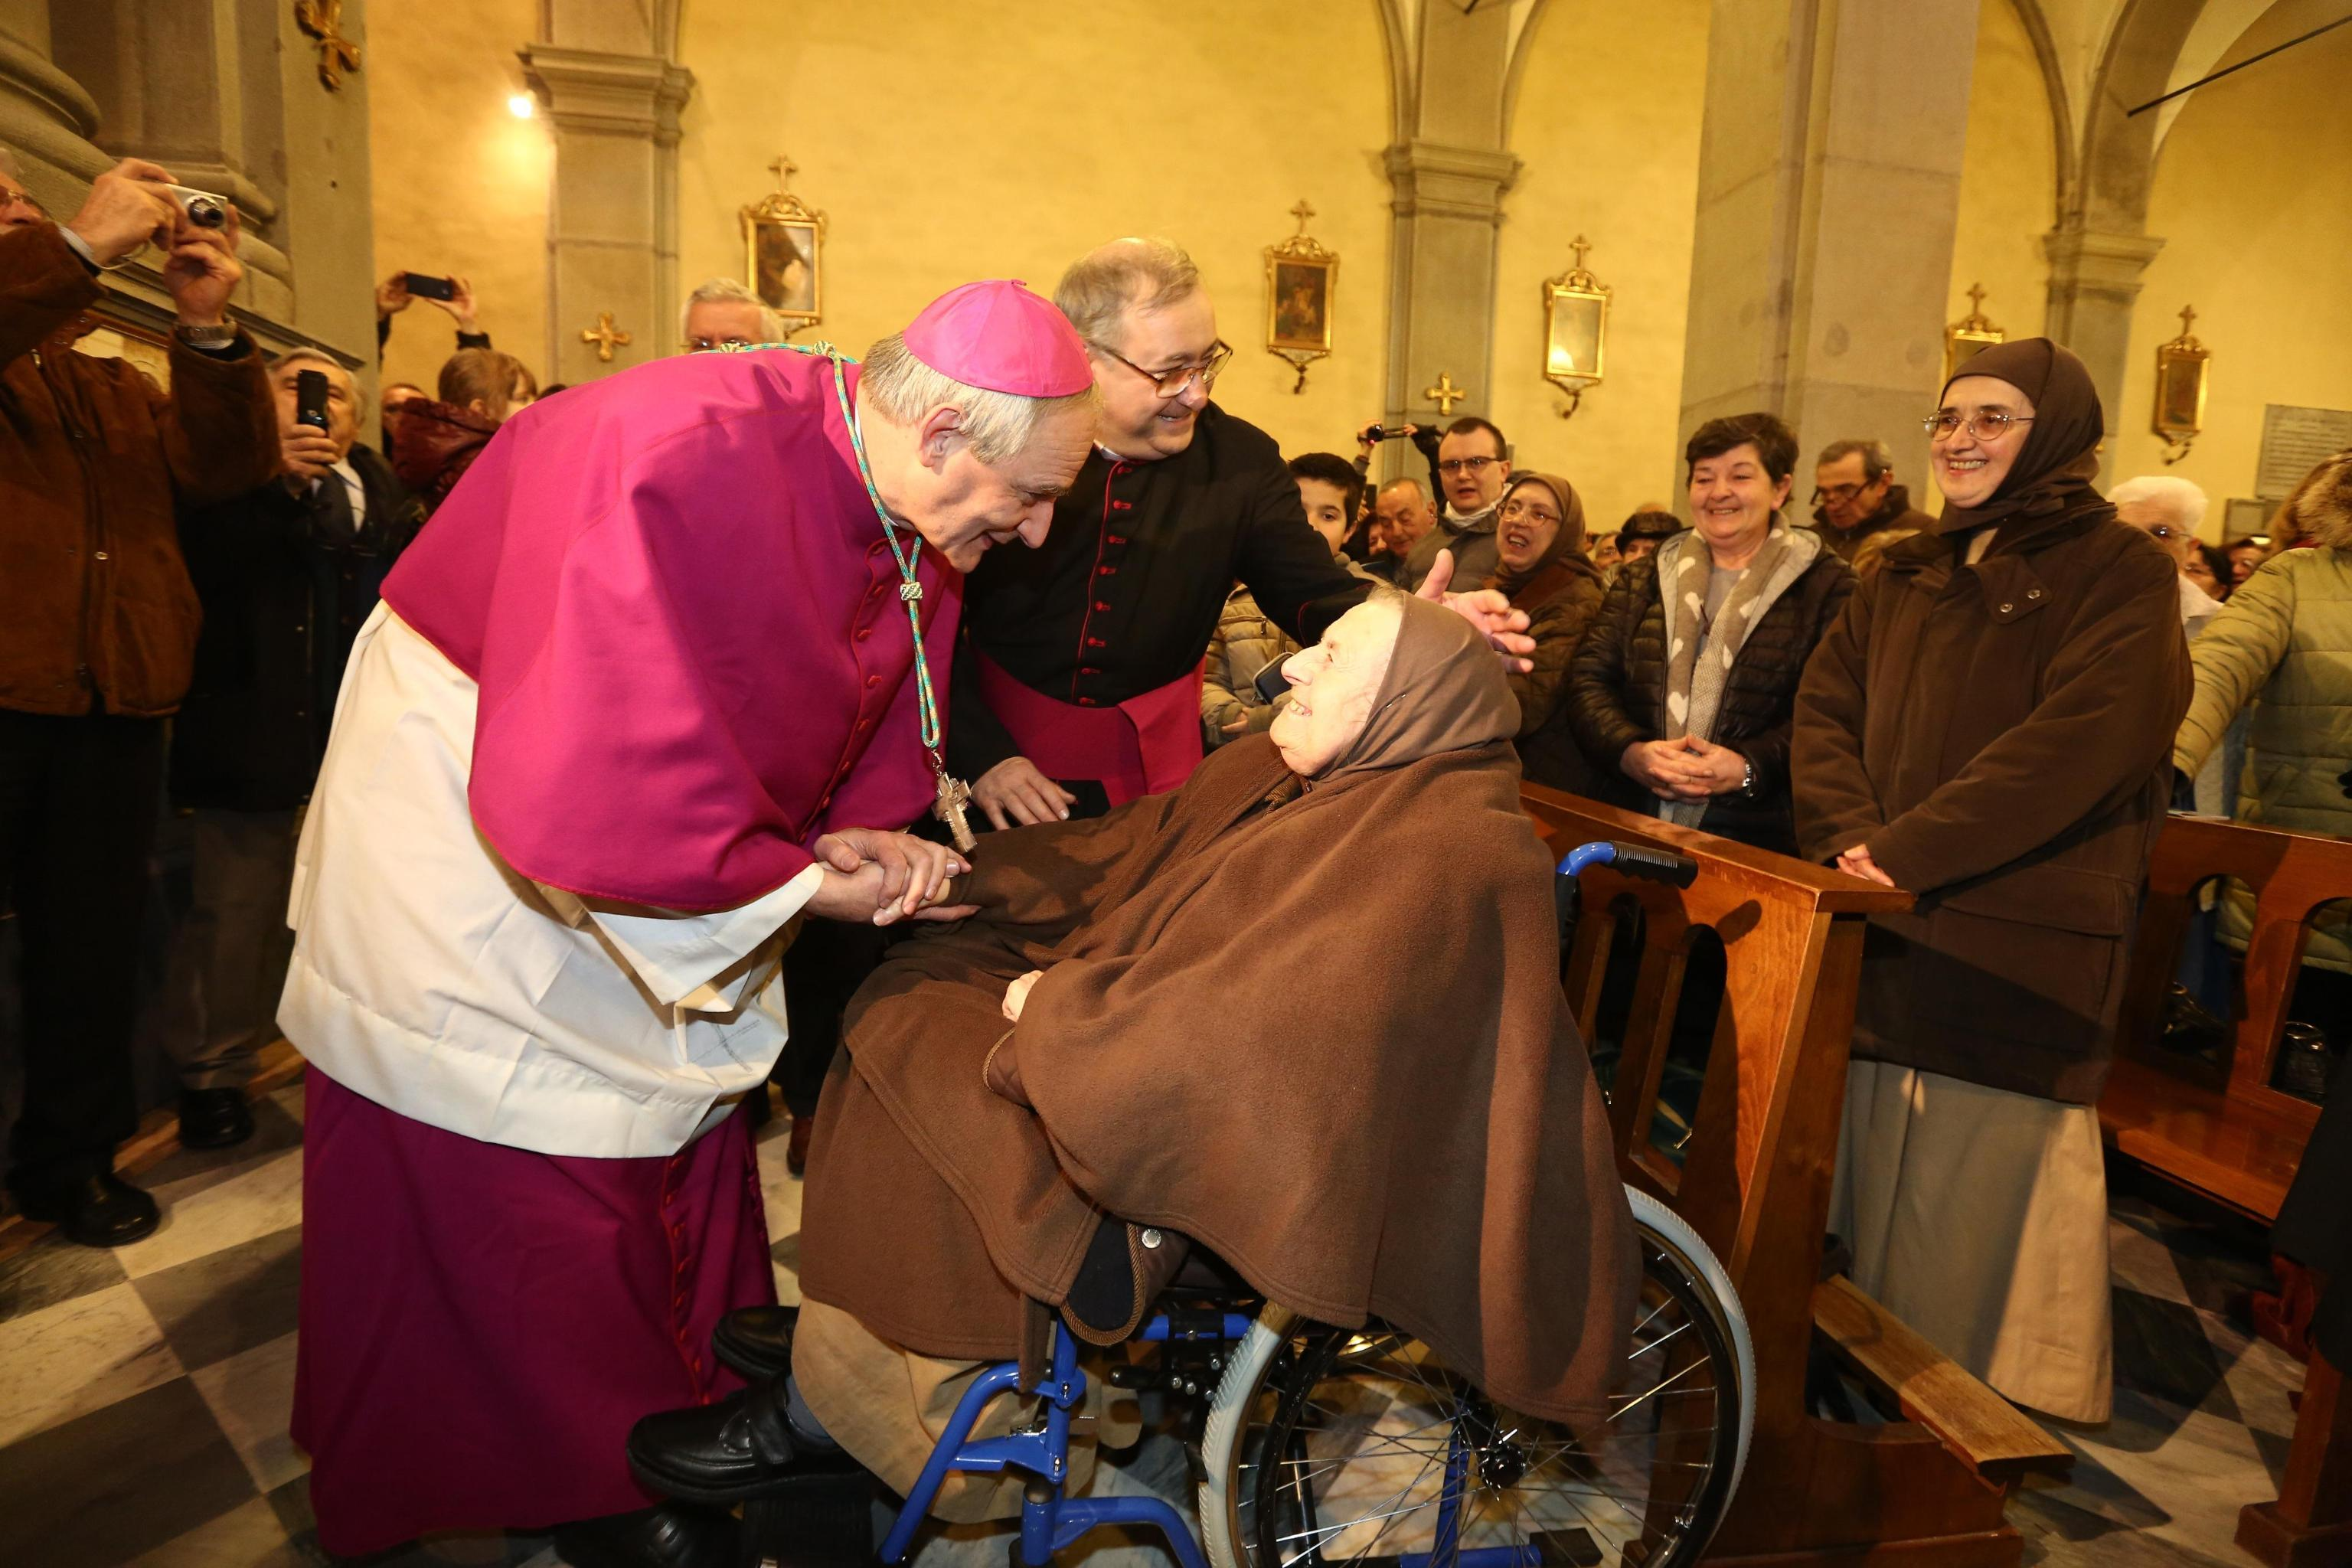 The new archbishop of Bologna